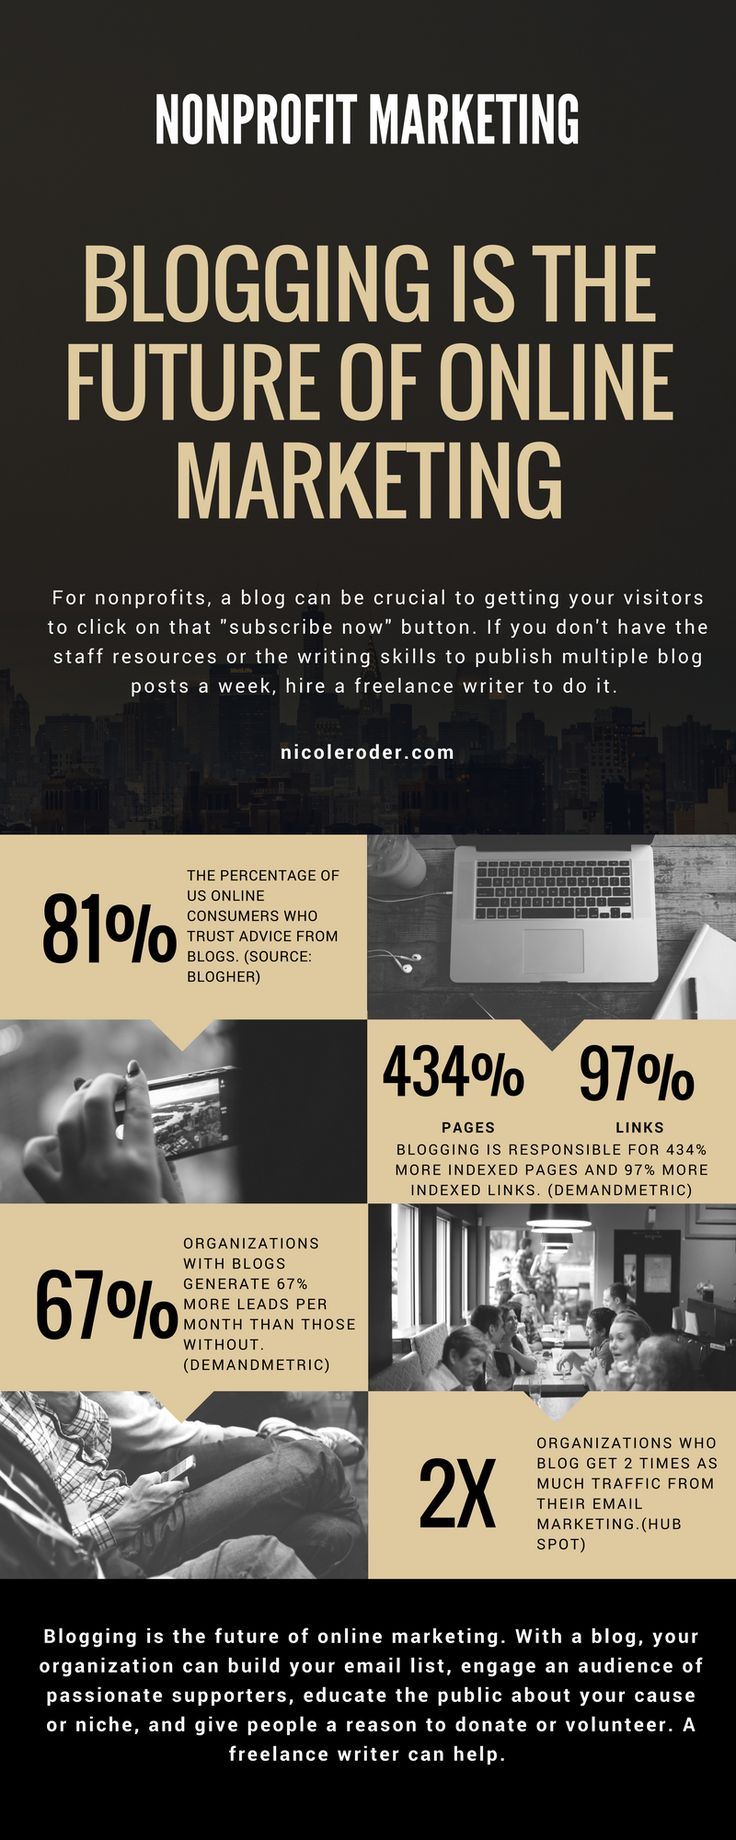 Nonprofit marketing_ Blogging is the future of online marketing. Gain supporters, educate, build your email list, and engage your audience.-2